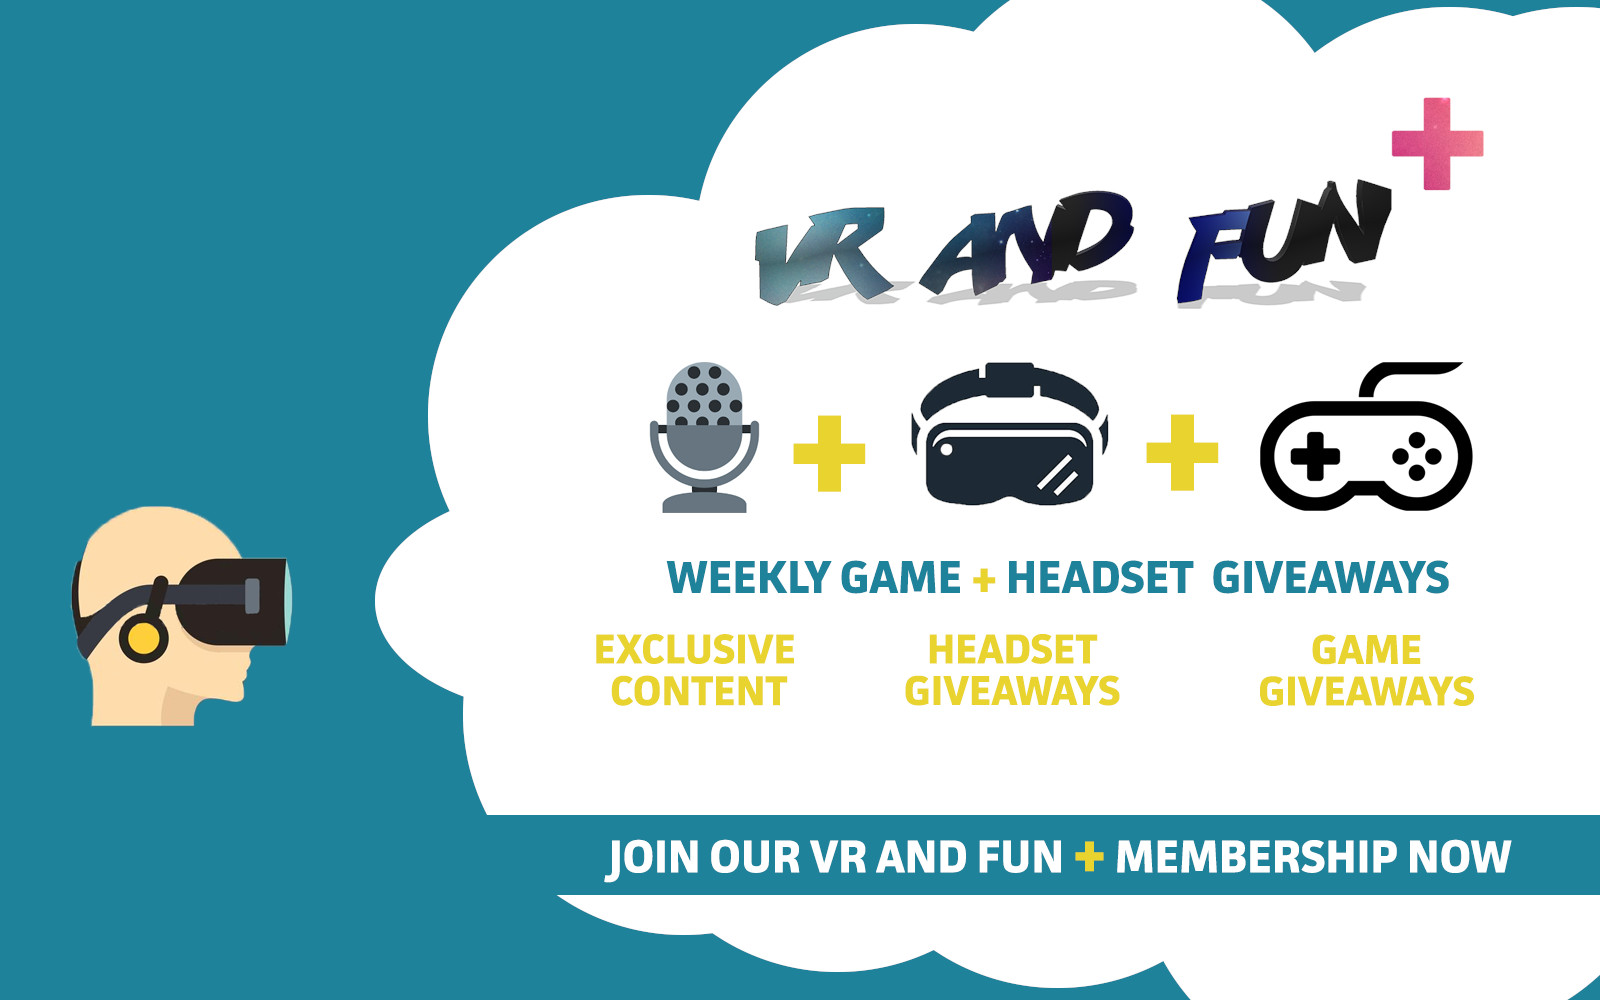 We're Giving Away Exclusive VR Games And Premium VR Headsets – VR AND FUN PLUS